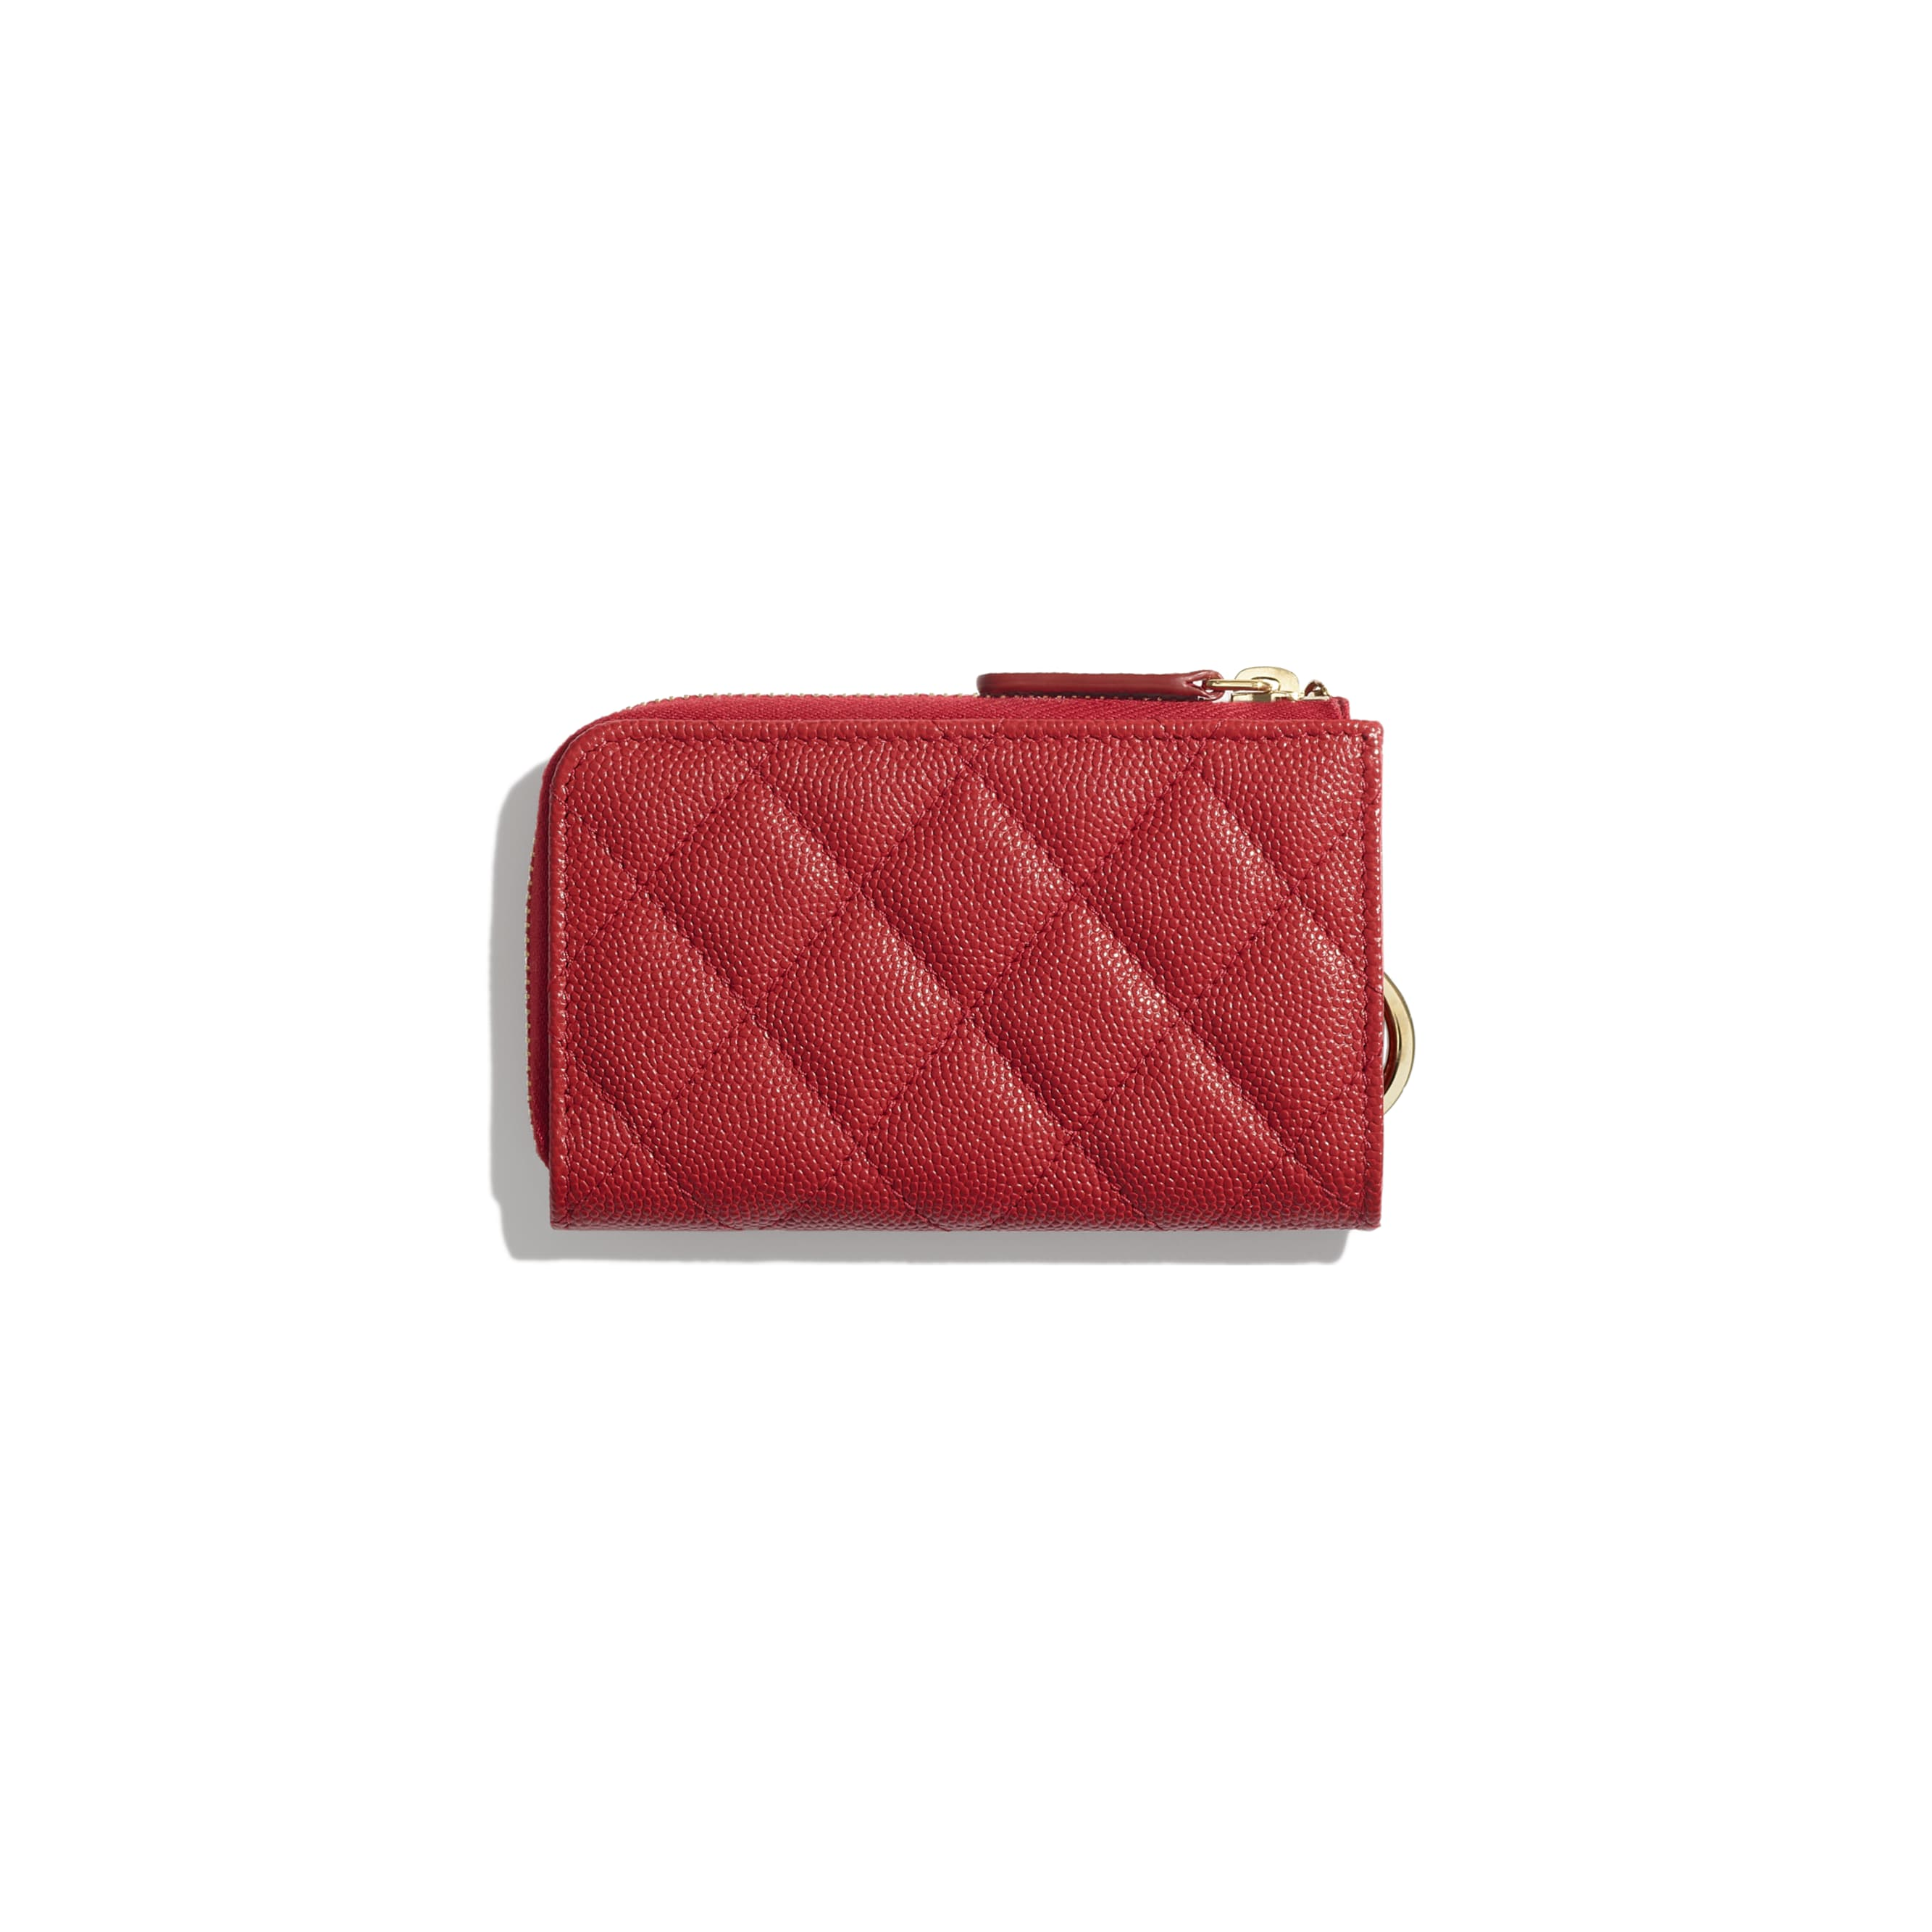 Classic Zipped Key Holder - Red - Grained Calfskin & Gold-Tone Metal - Alternative view - see standard sized version